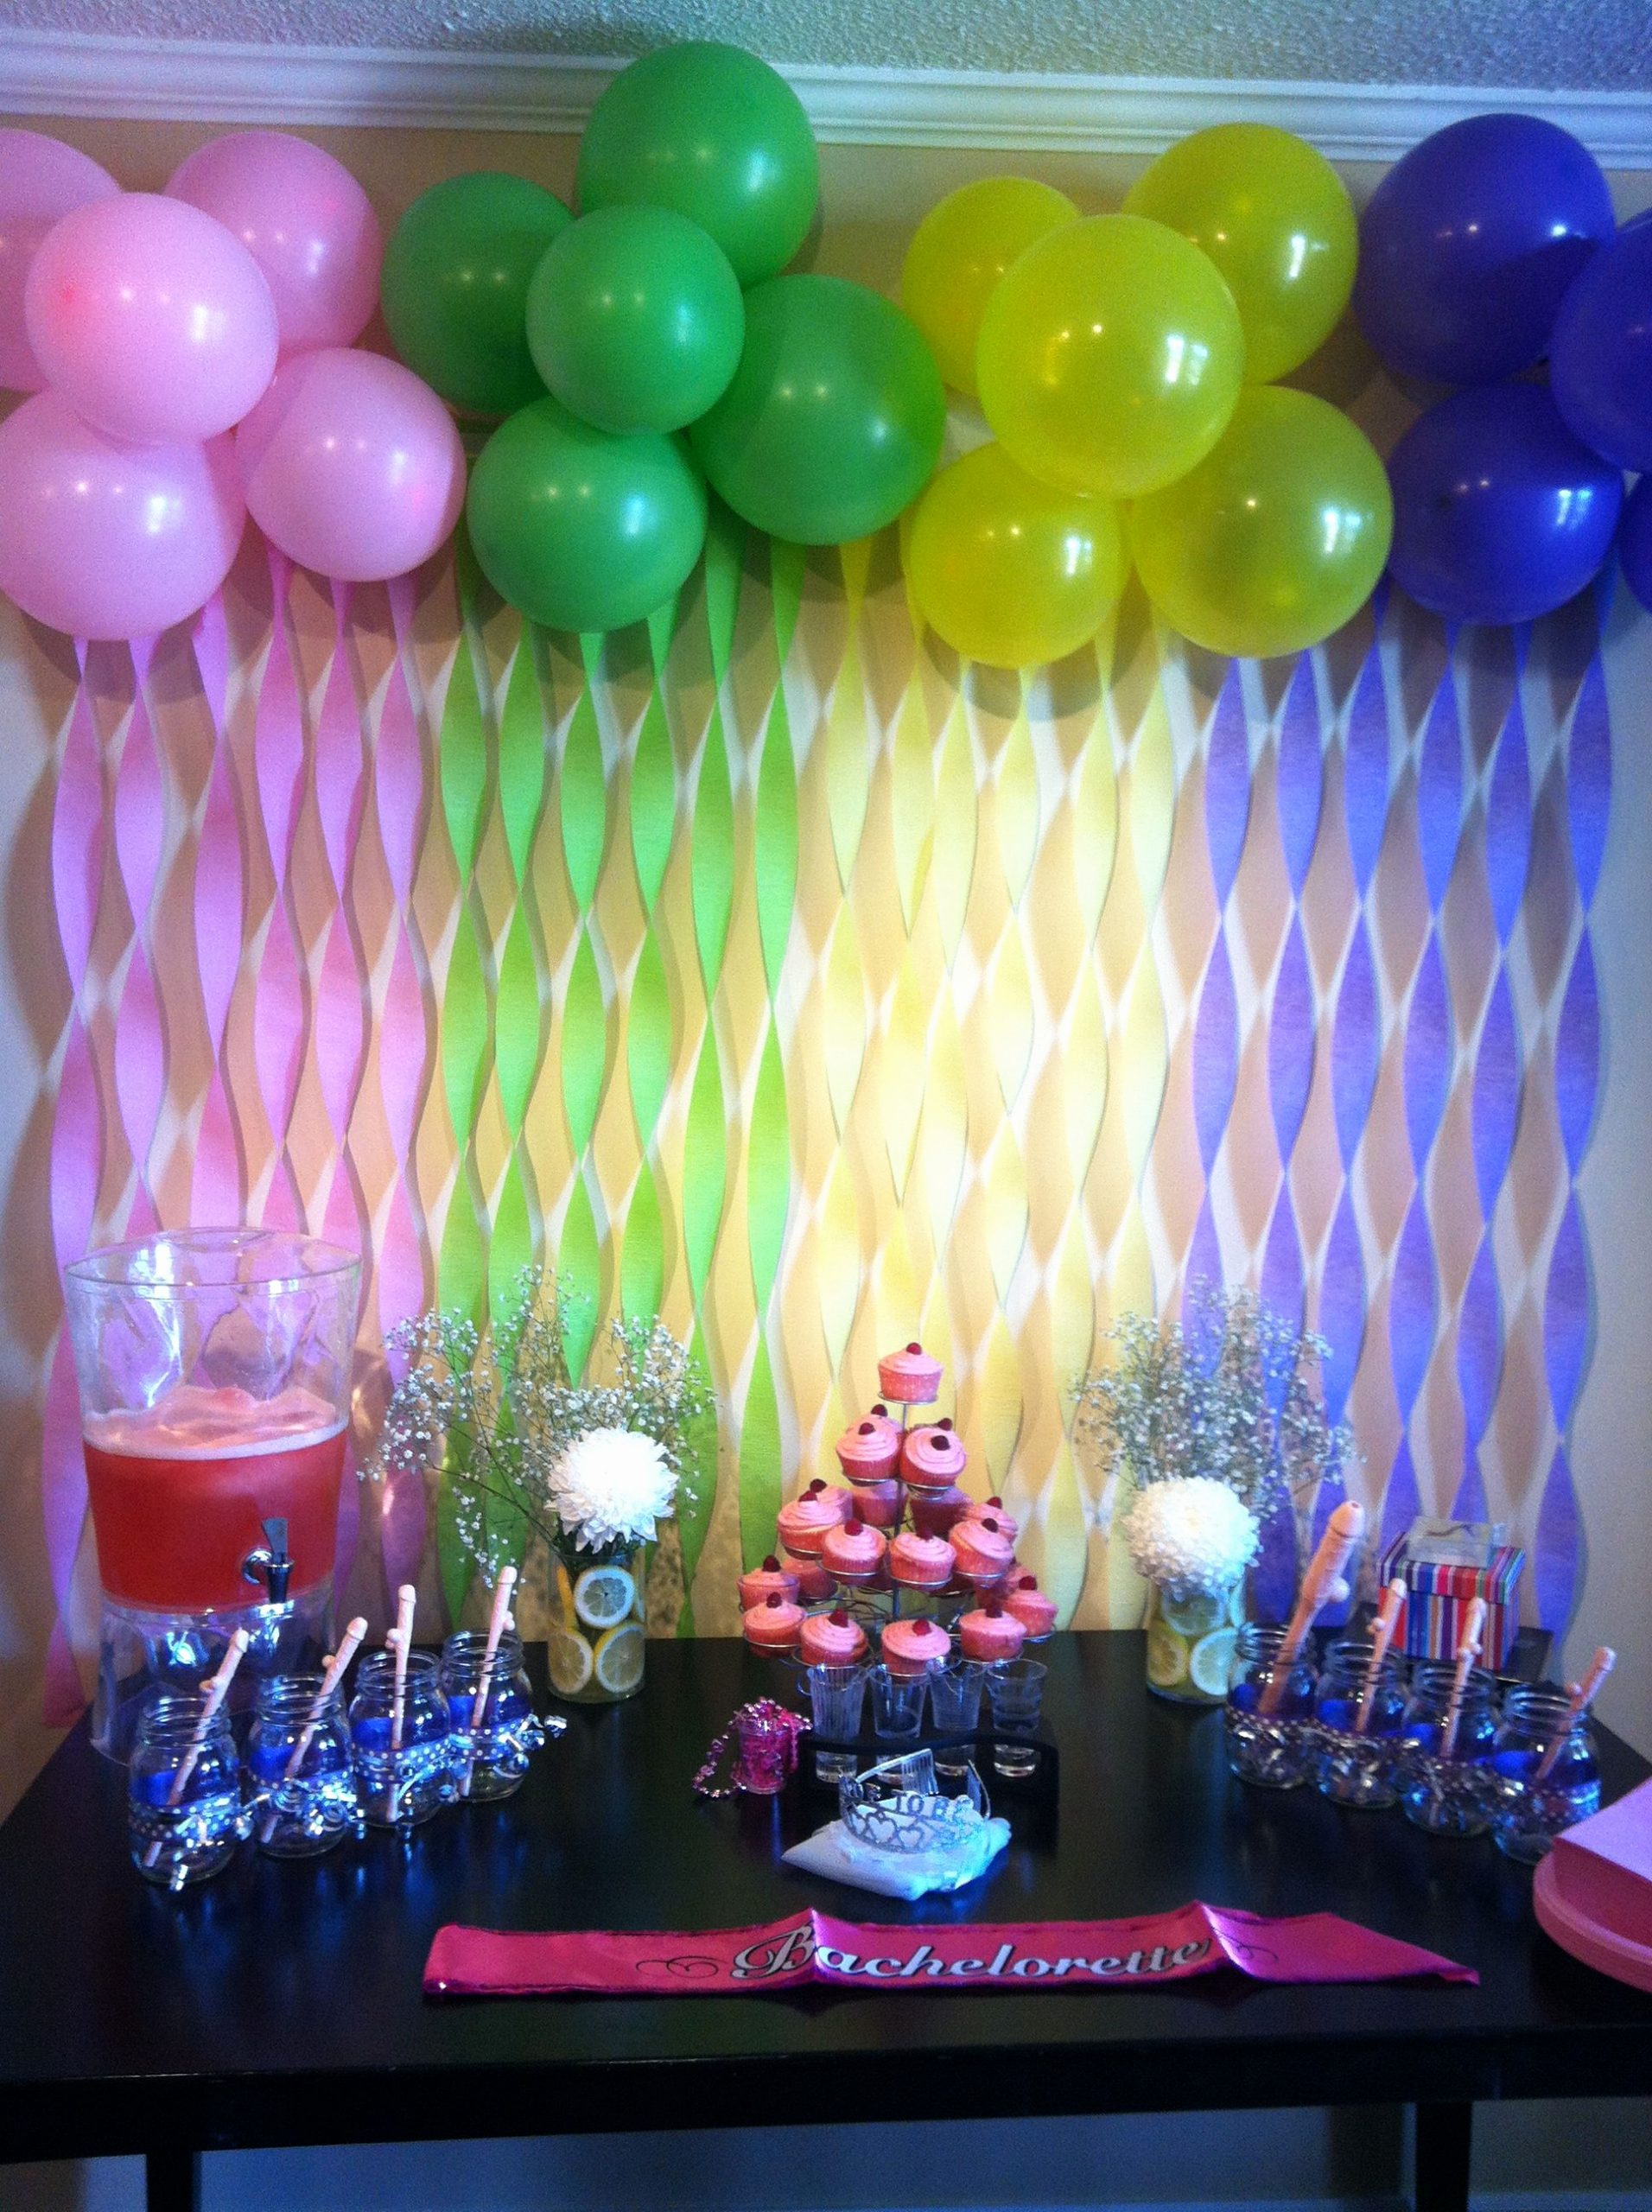 Birthday Decoration Ideas with Balloons at Home Luxury Bachelorette Party Decor